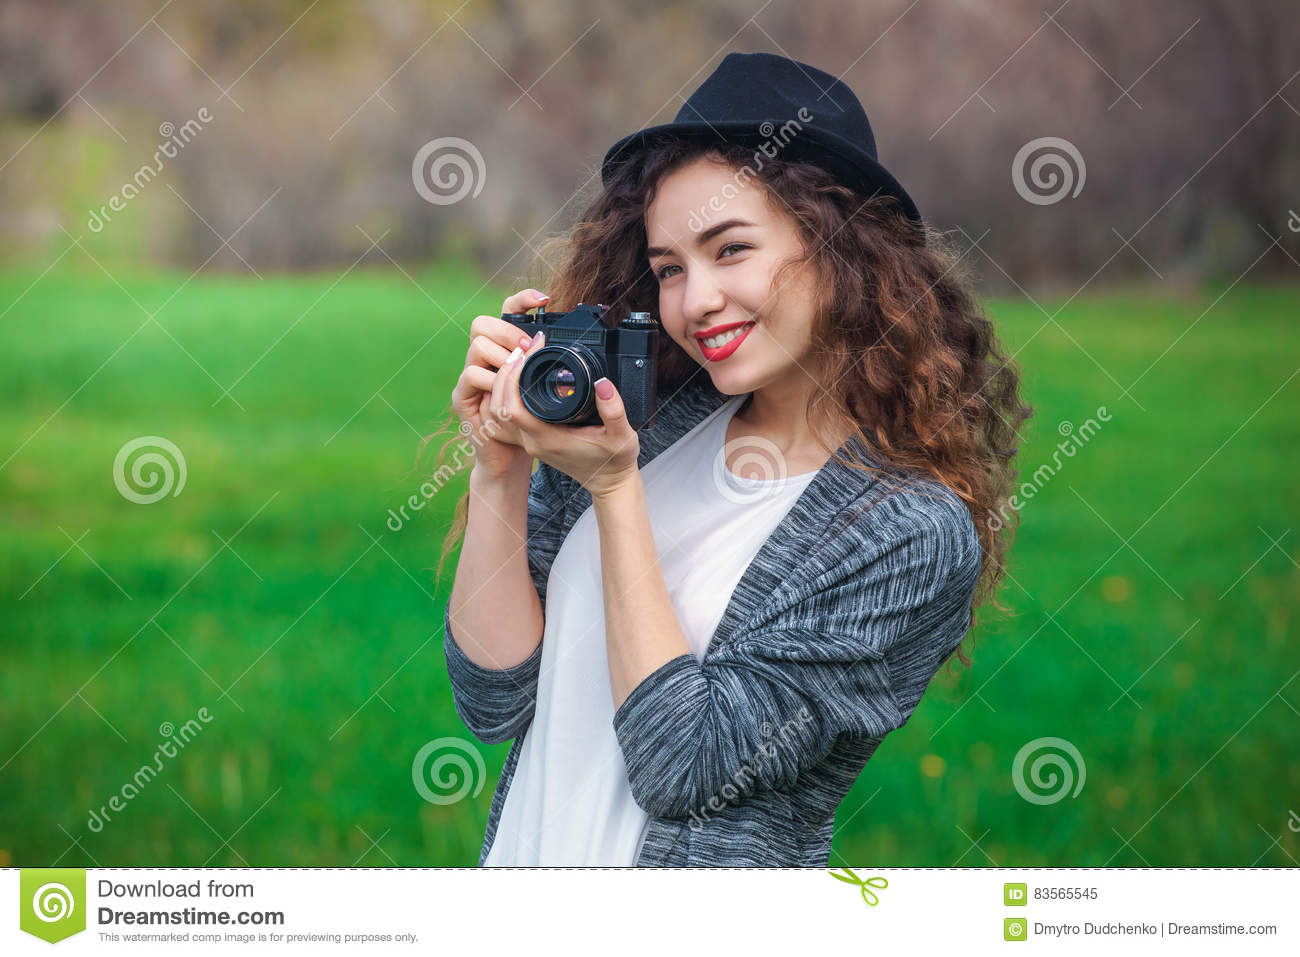 Beautiful girl-photographer with curly hair holds a camera and make a photo, spring outdoors in the park.